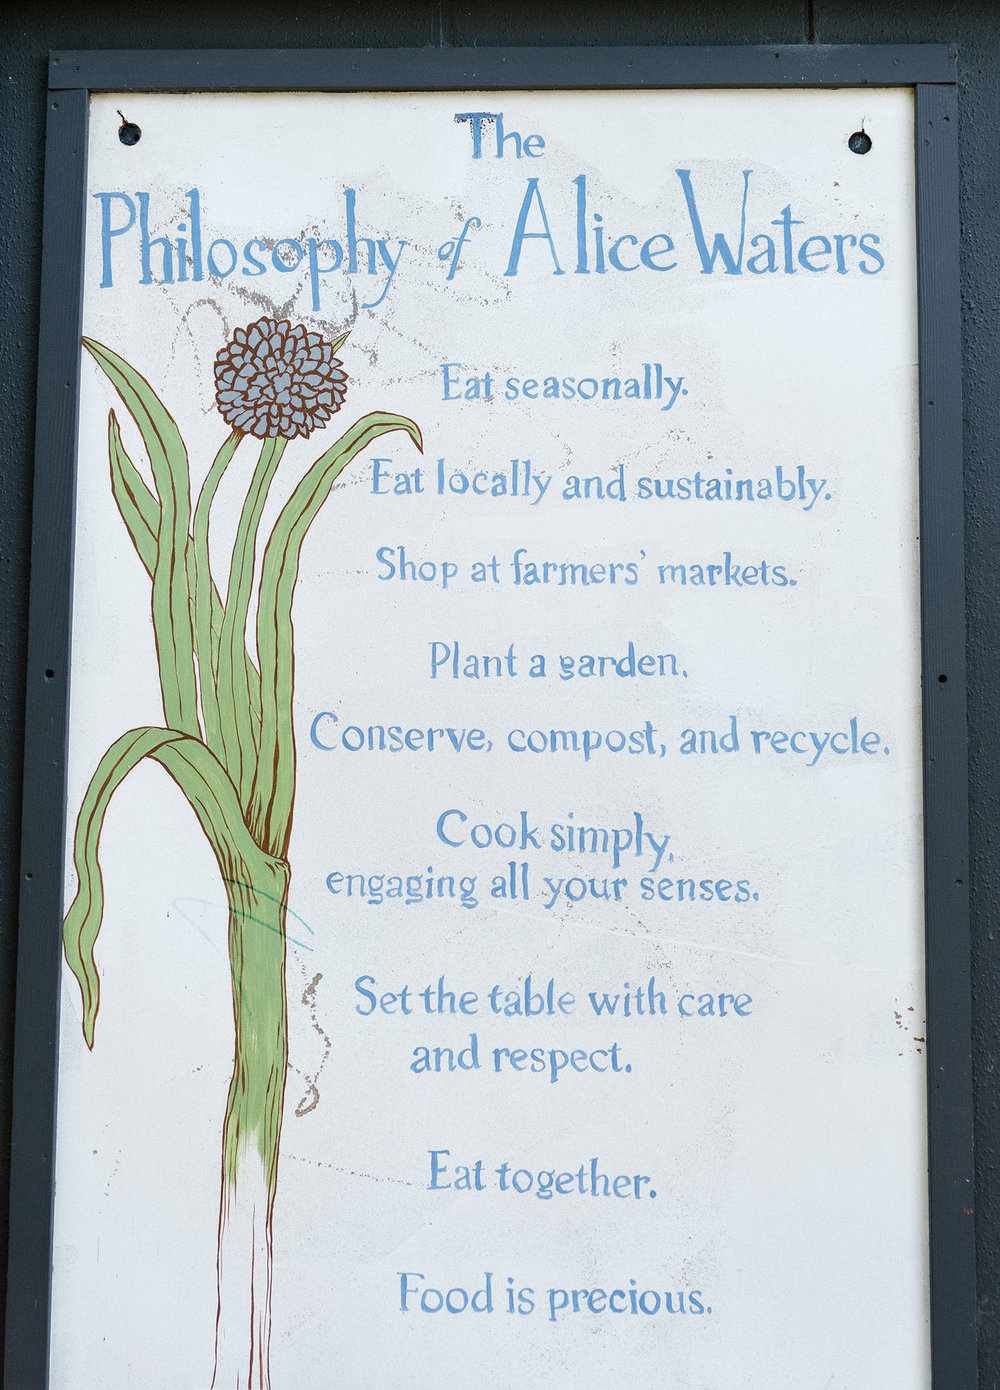 Alice Waters ' philosophy on slow food and eating posted at the Edible Schoolyard at Martin Luther King Middle School in Berkeley. | Credit: Jason Henry